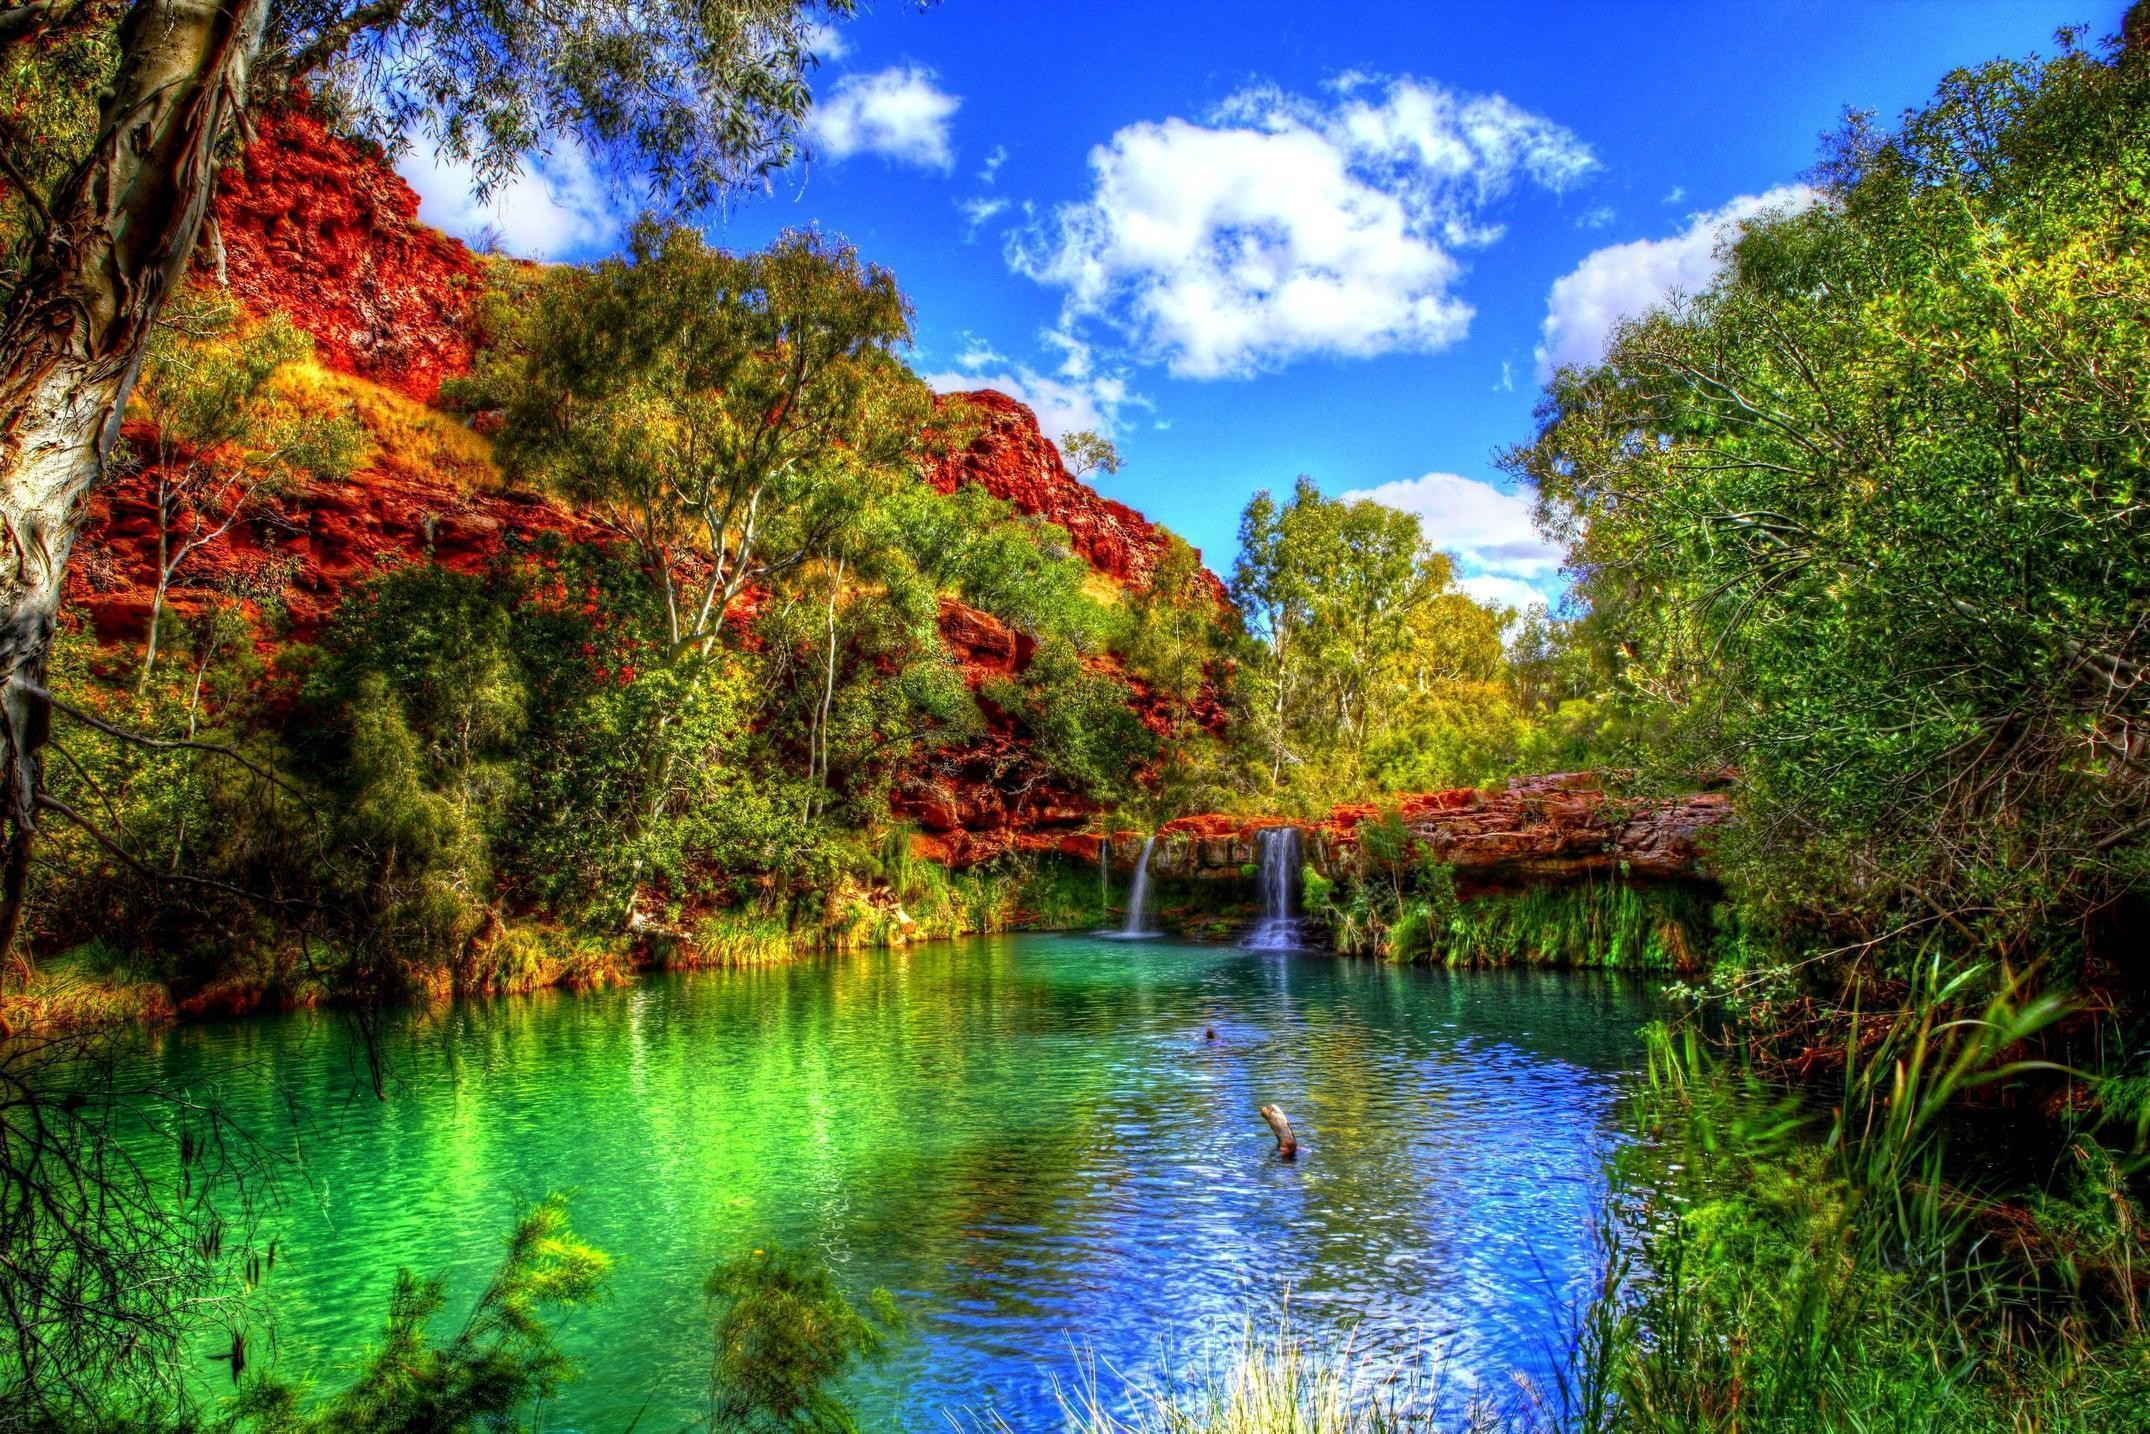 Res: 2150x1434, 492 Scenic Wallpapers   Scenic Backgrounds